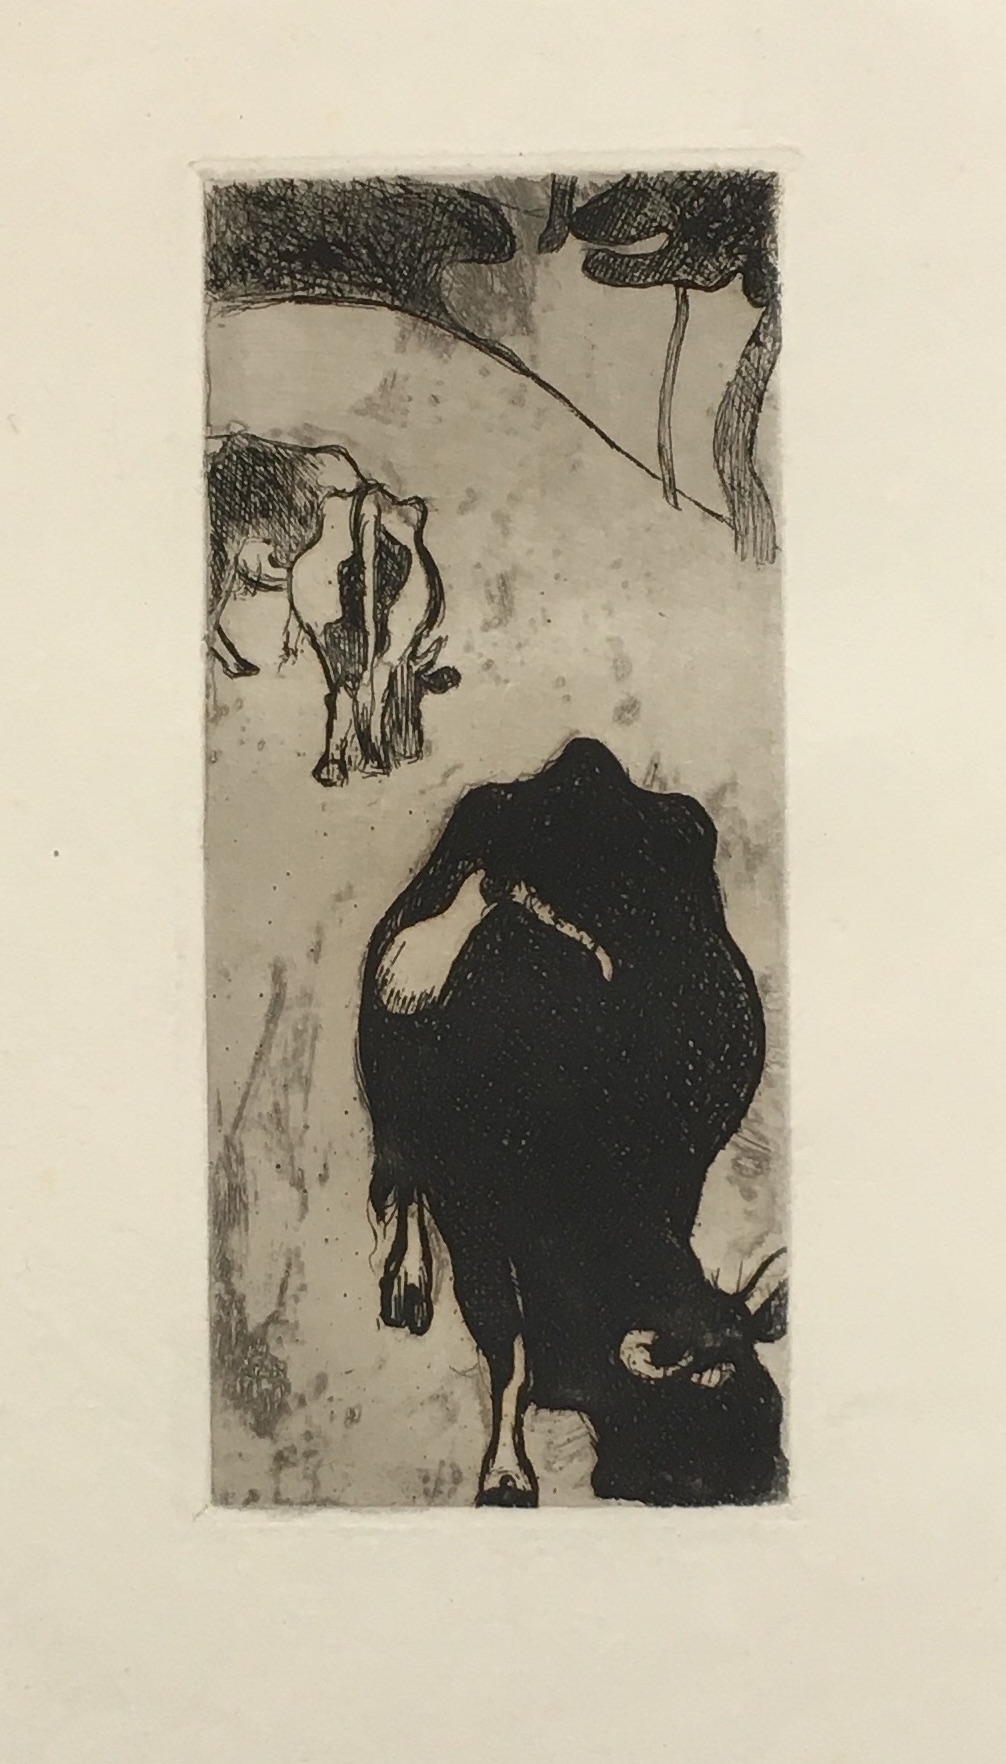 Cuno Amiet, Cows (Brittany), etching, 1893